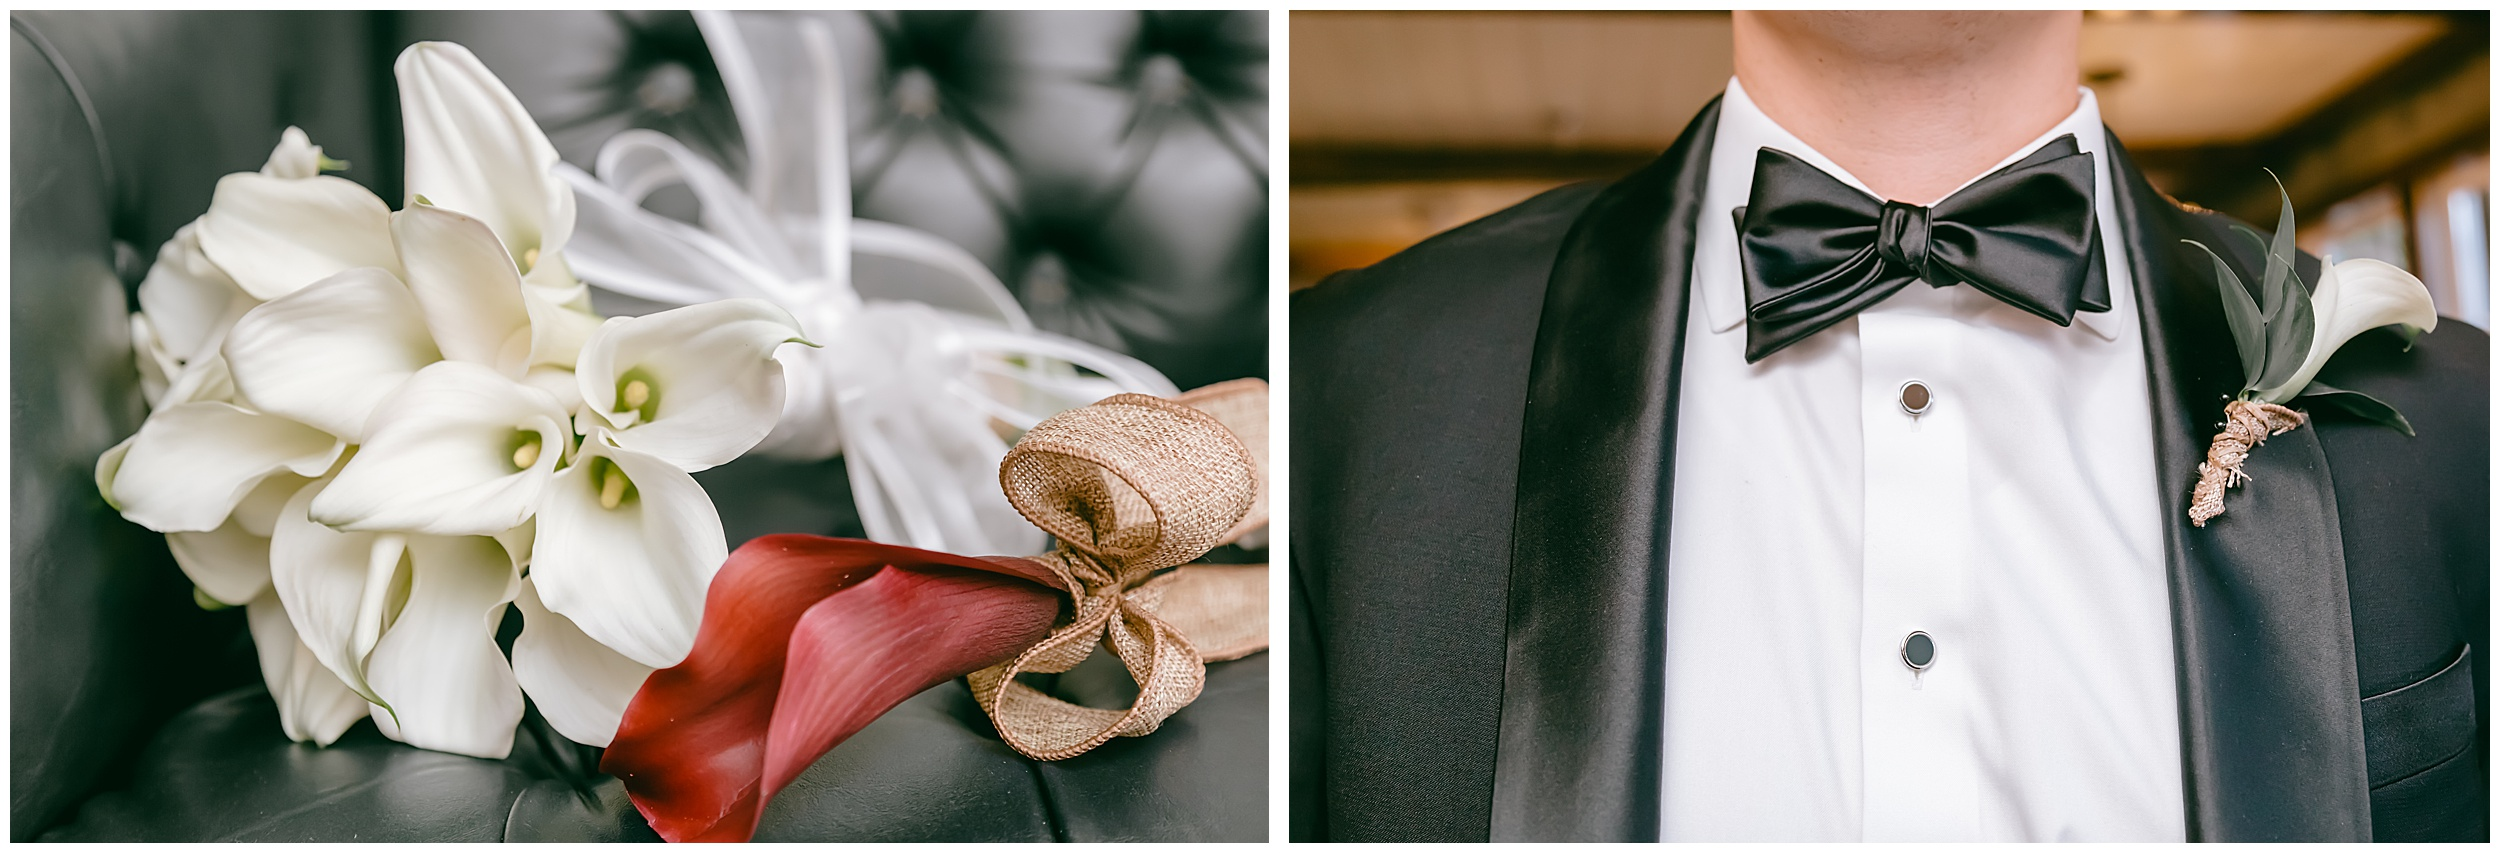 groom-bow-tie-flowers-getting-ready